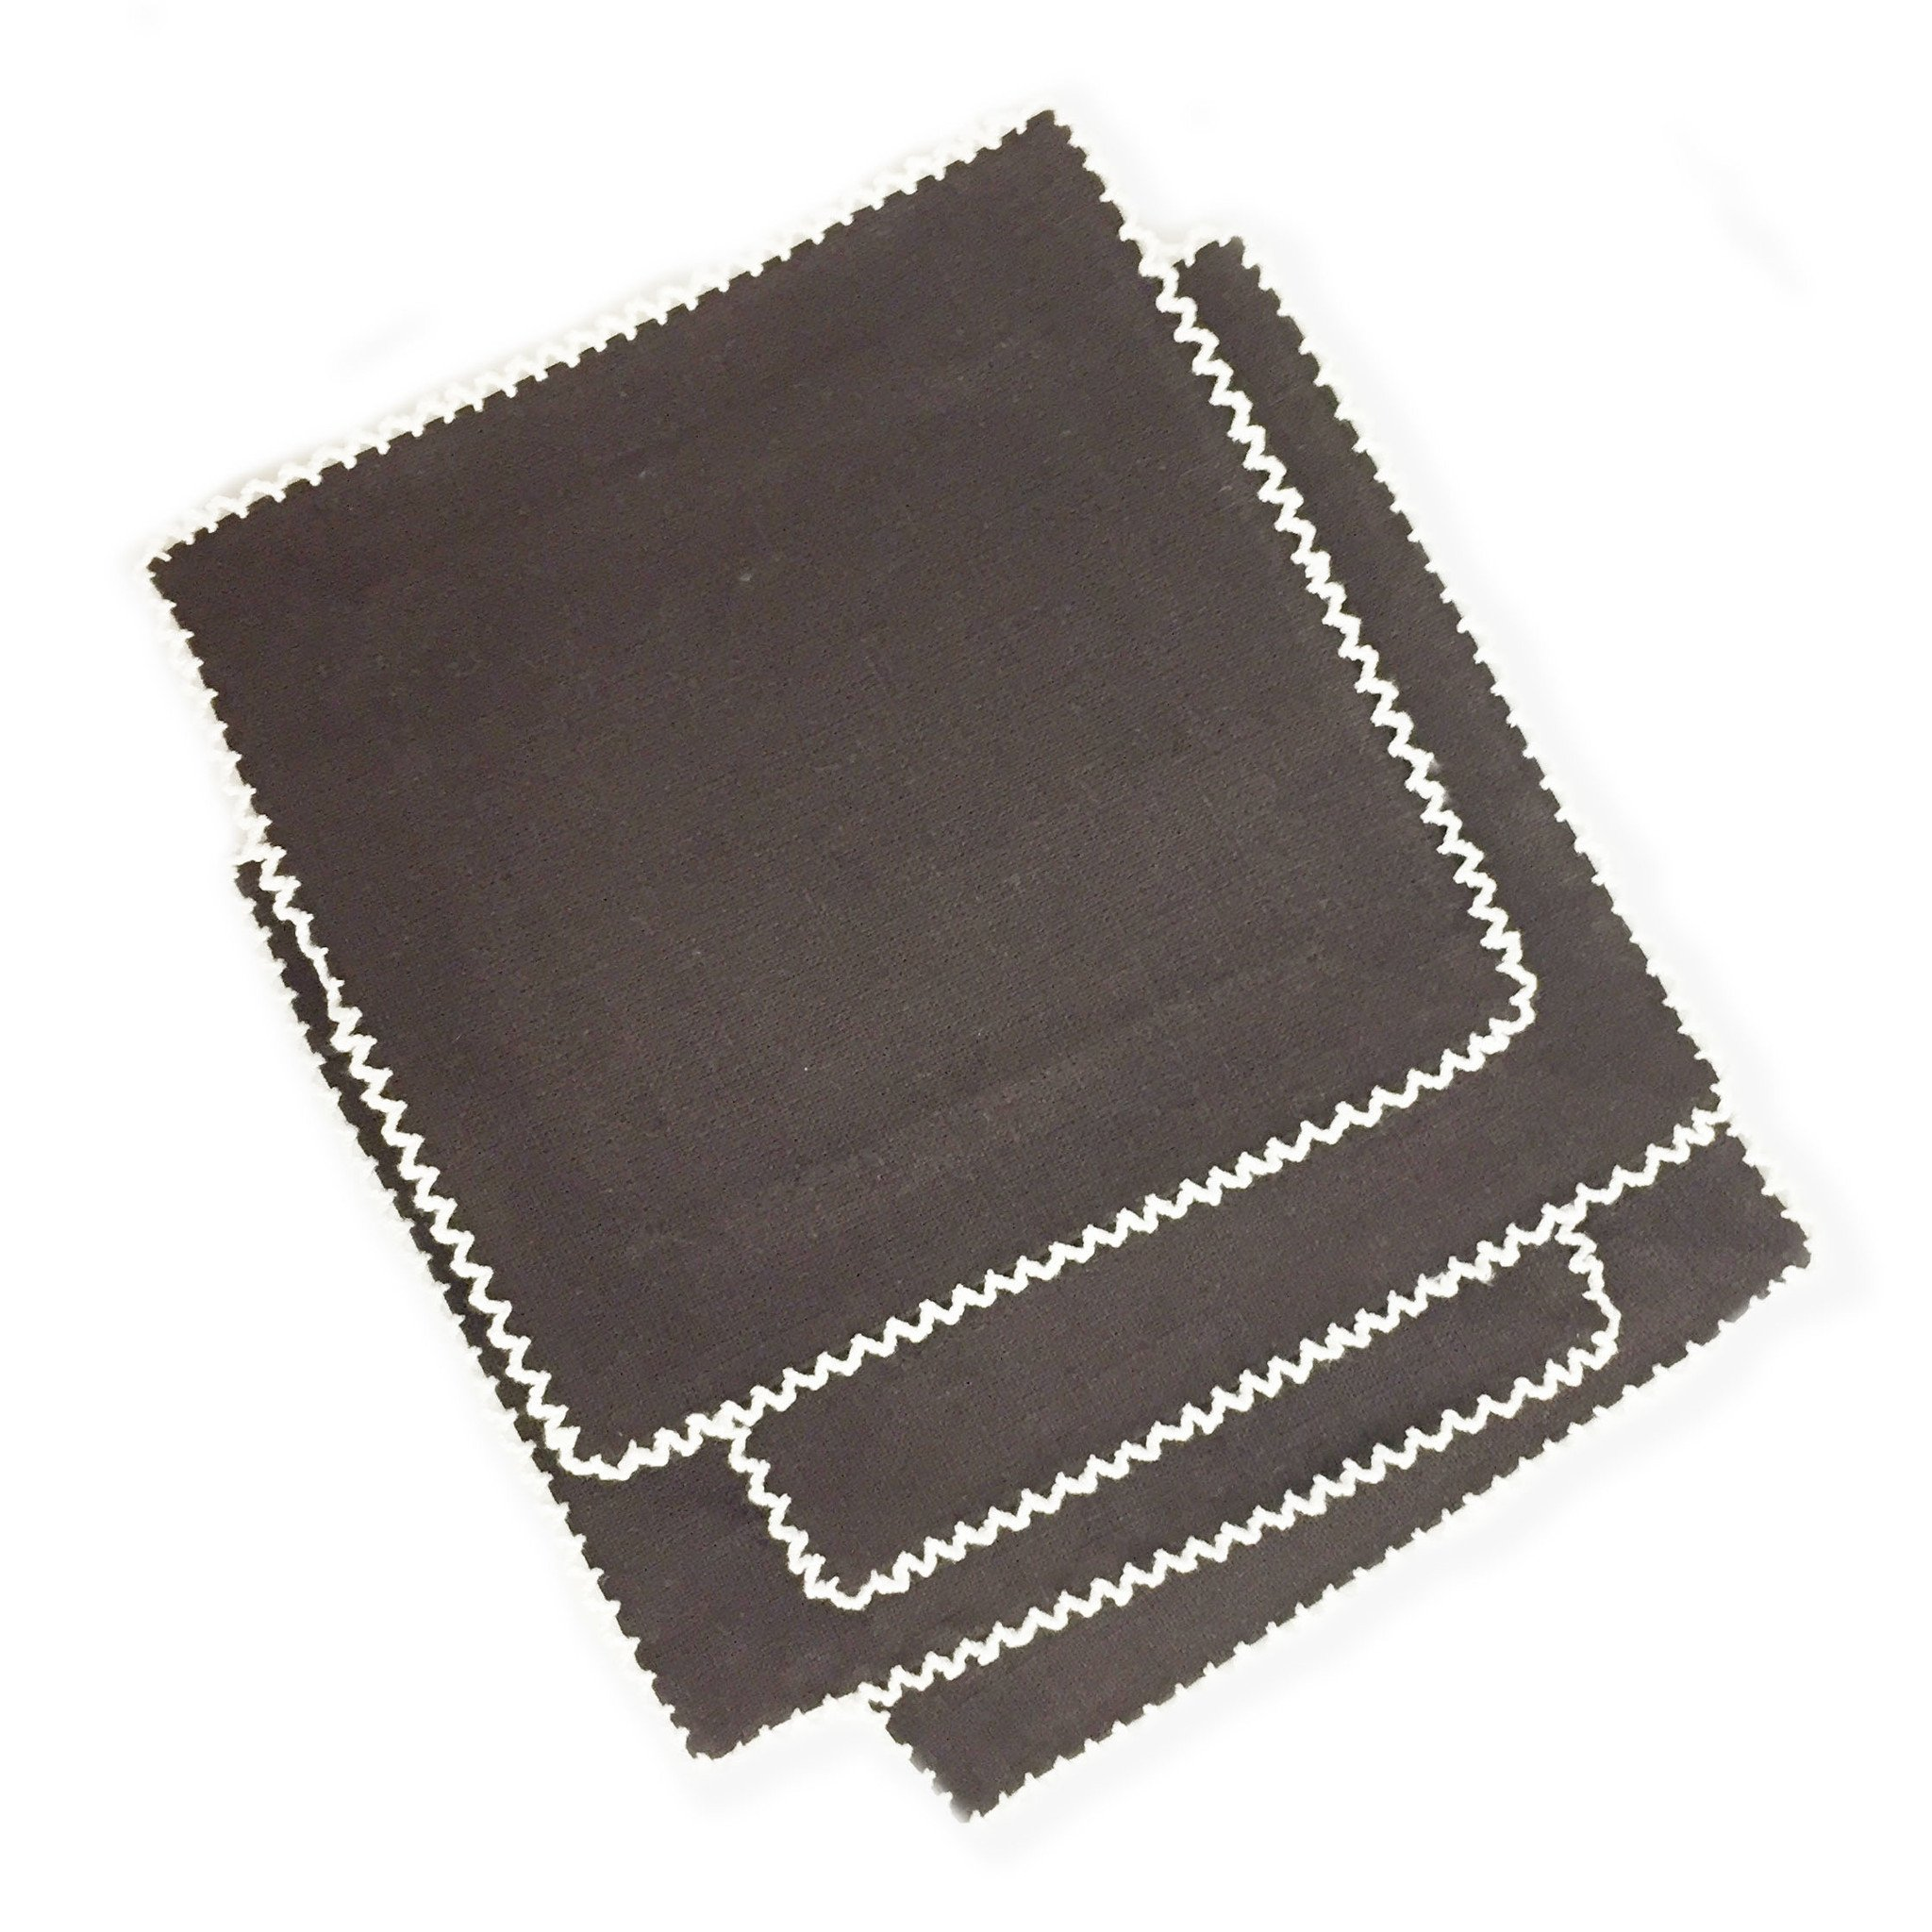 Chocolate Picot Cocktail Napkins, Set/4